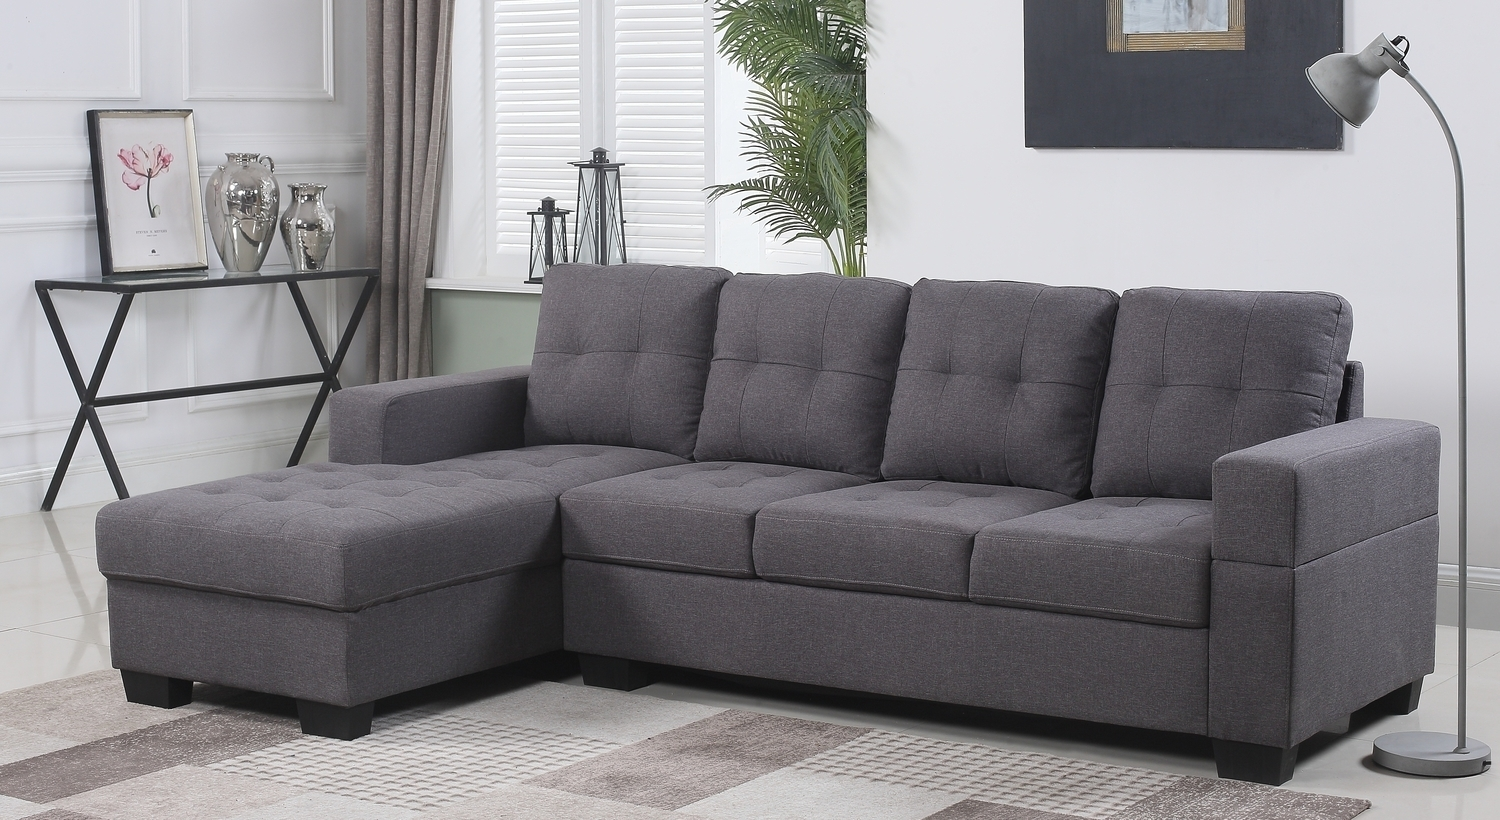 sectional sofas ontario canada 2 seater corner sofa bed uk 10 inspirations ideas